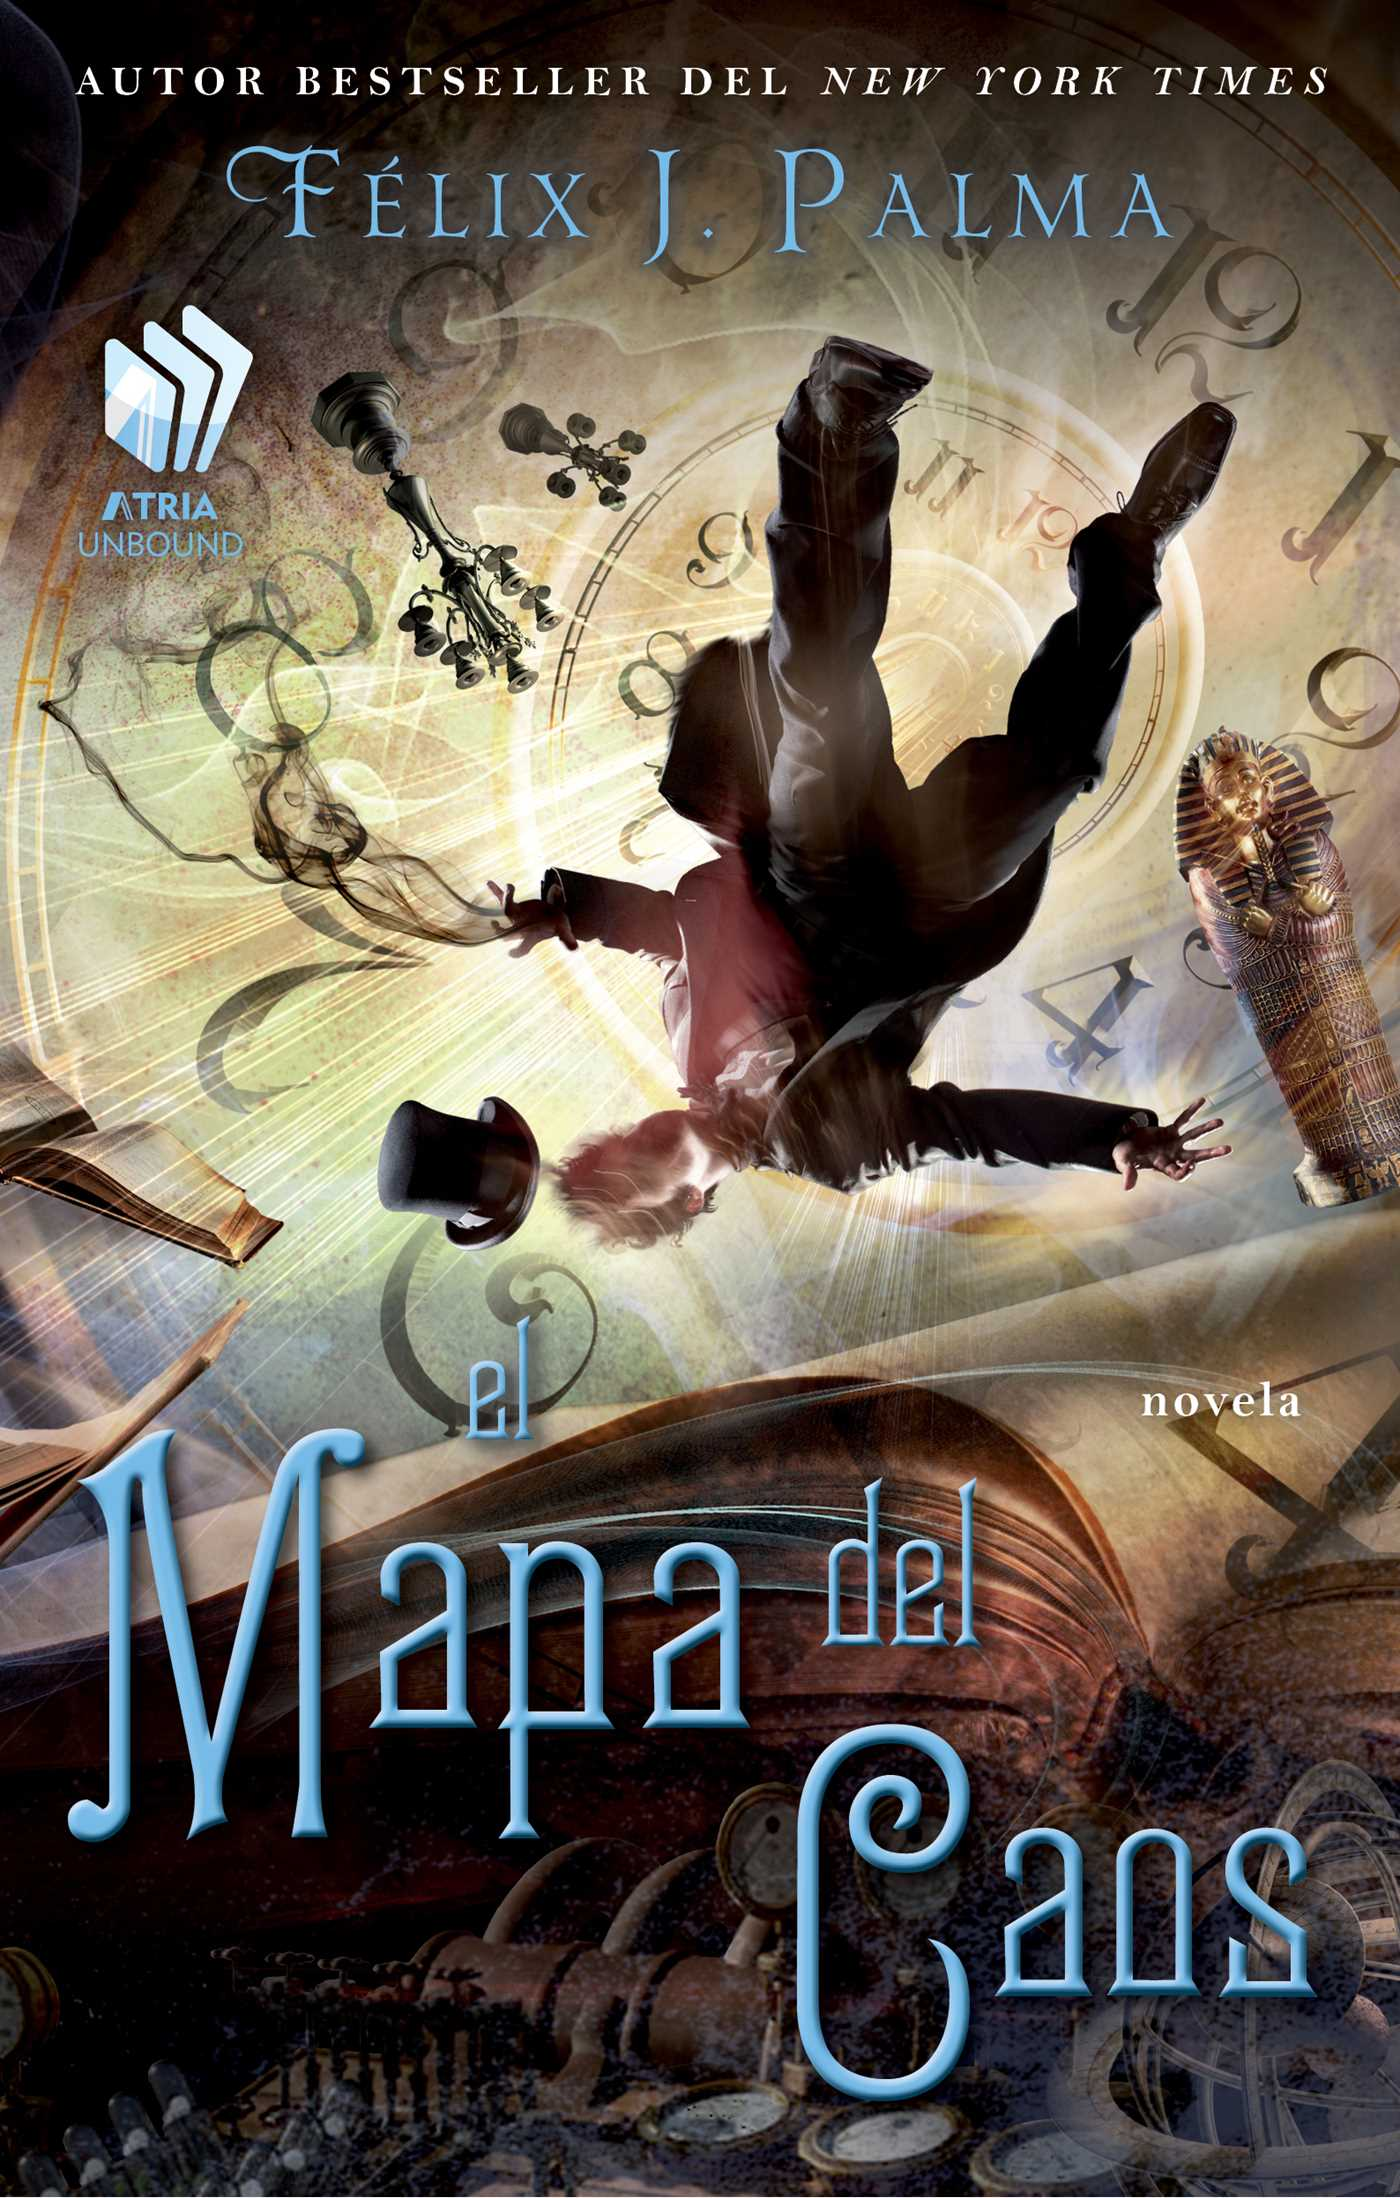 El-mapa-del-caos-map-of-chaos-spanish-edition-9781451689228_hr